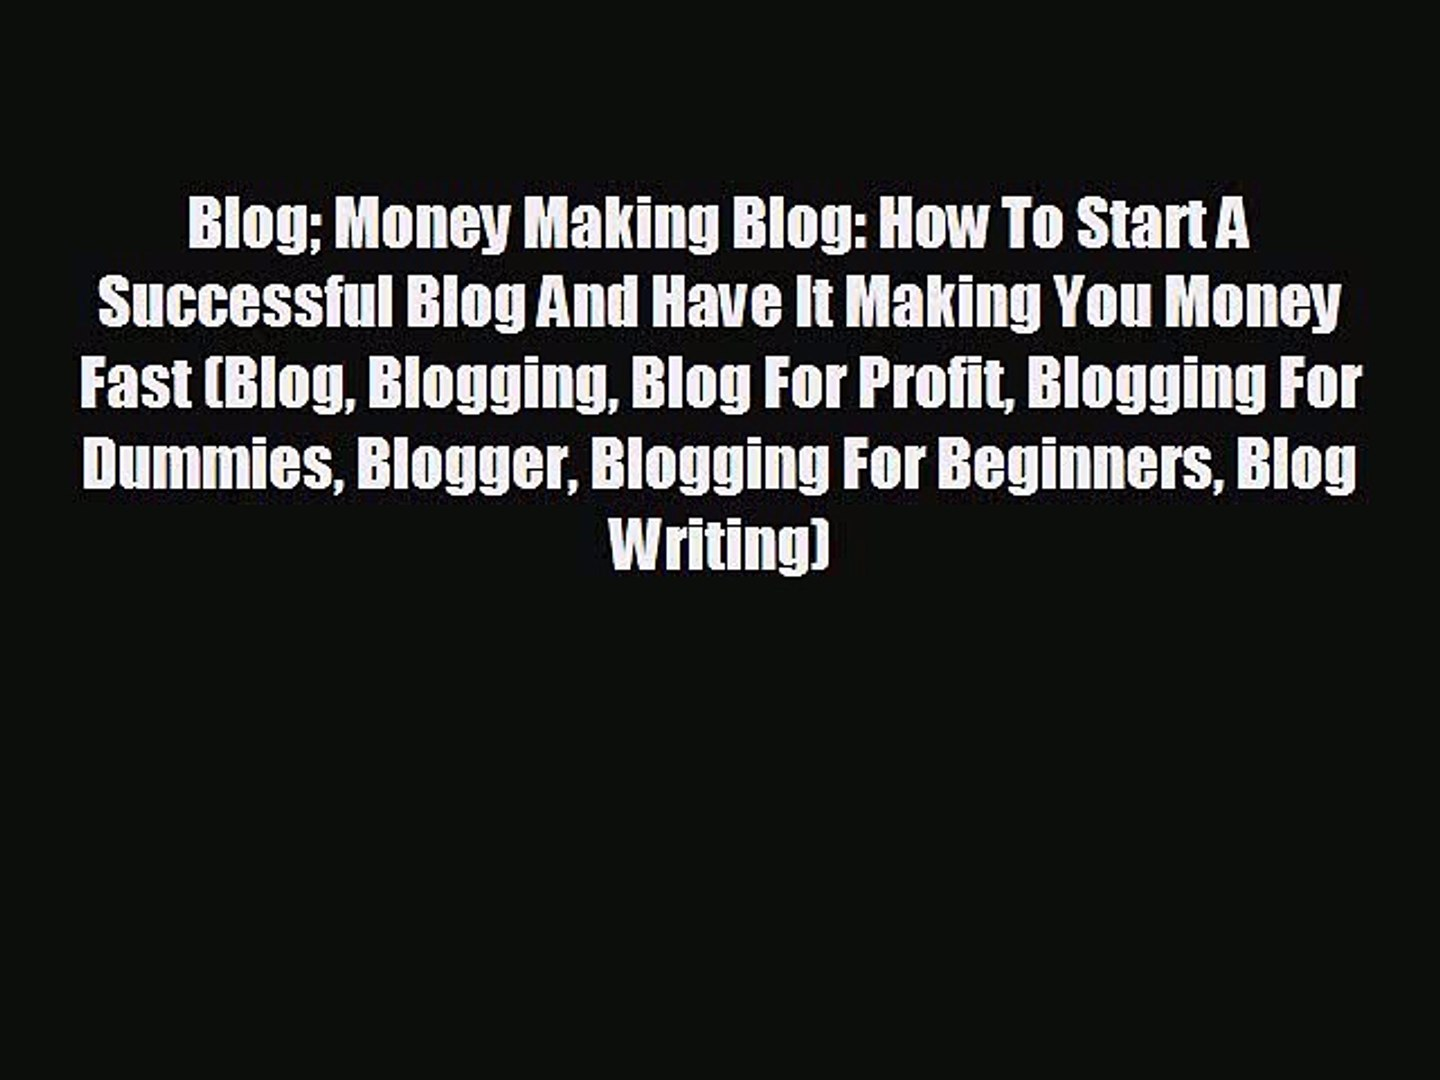 Enjoyed read Blog Money Making Blog: How To Start A Successful Blog And Have It Making You